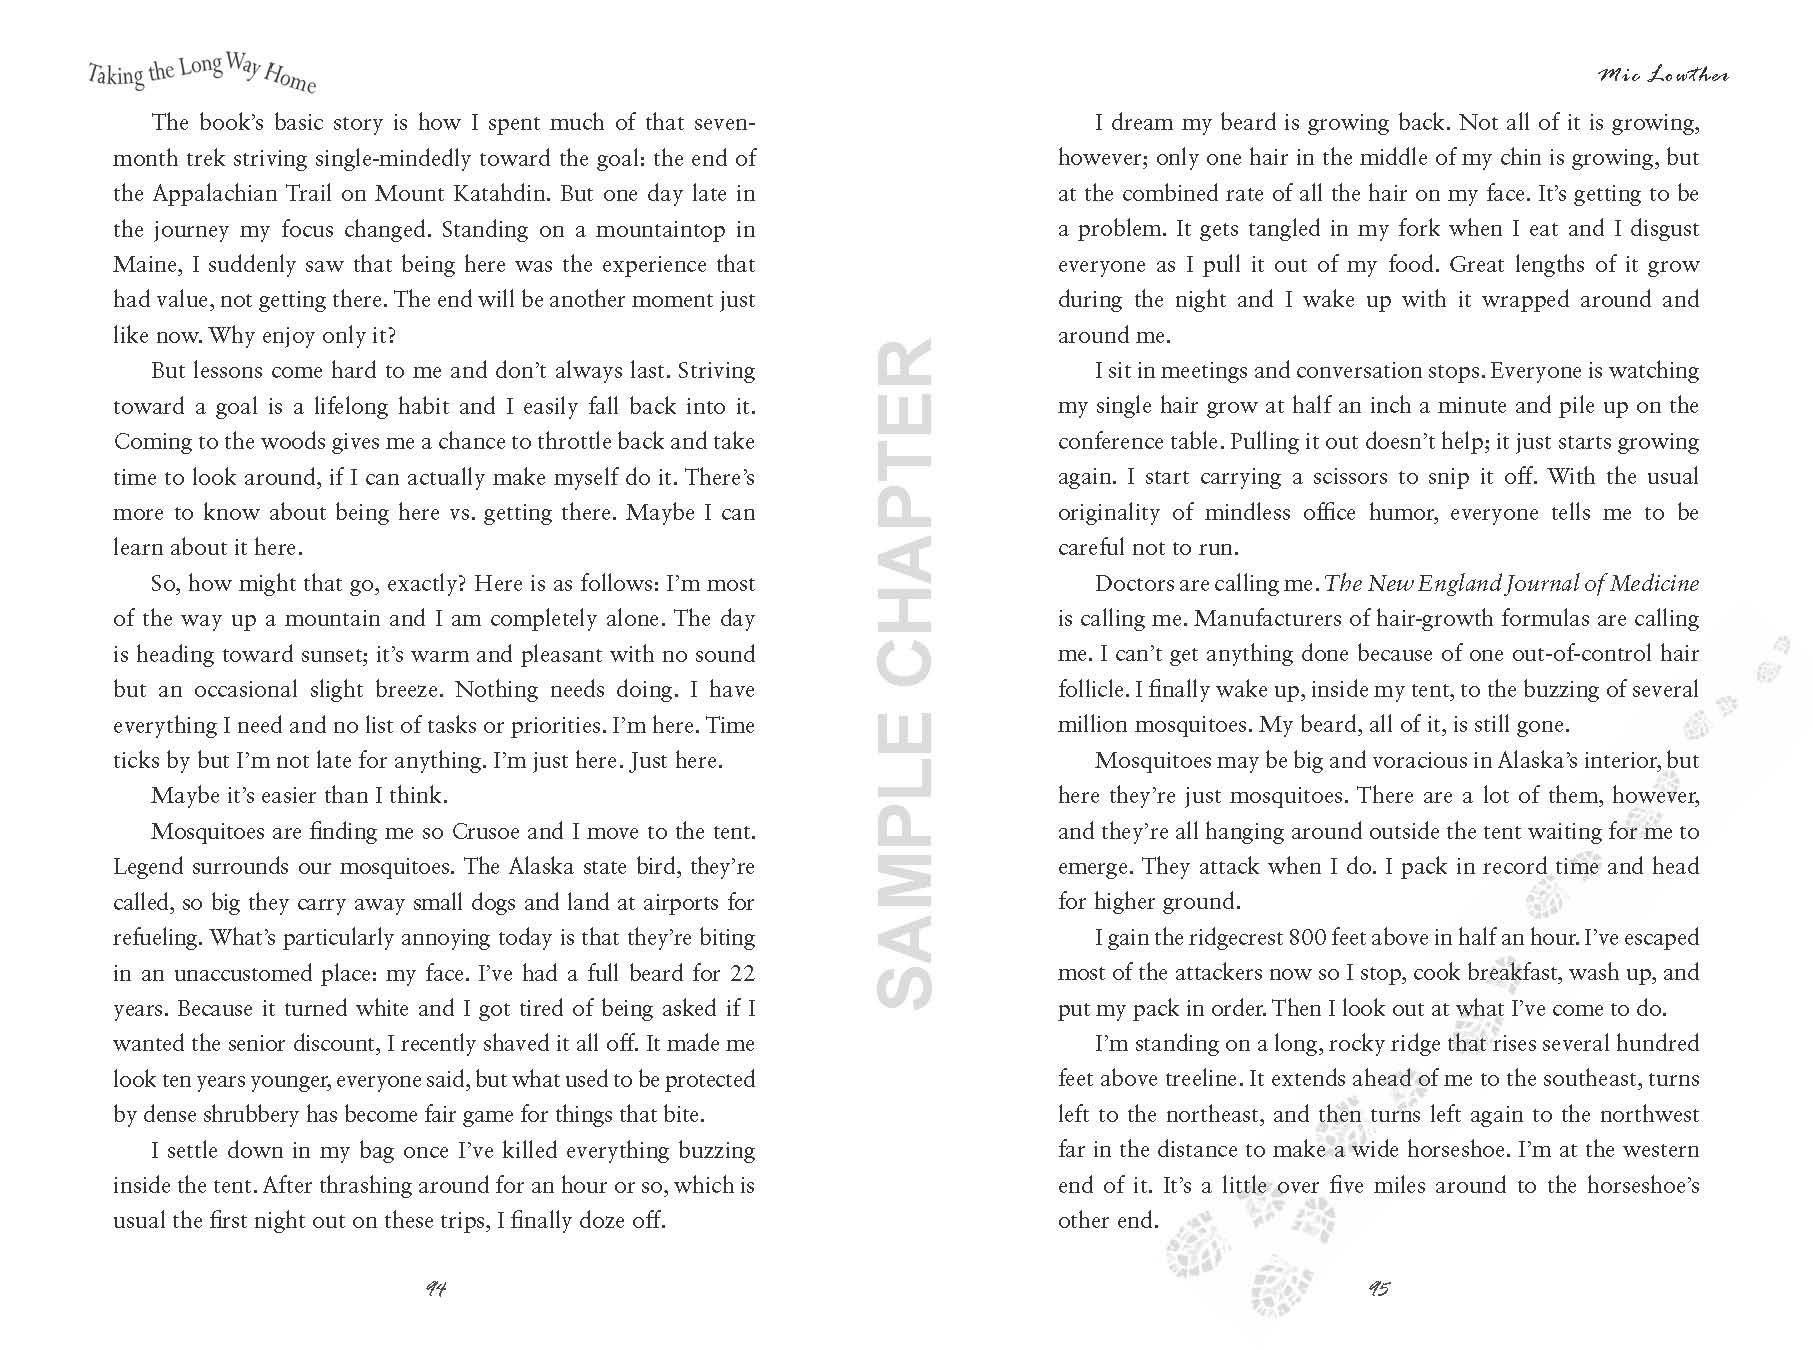 Taking The Long Way Home sample chapter pg 5 & 6